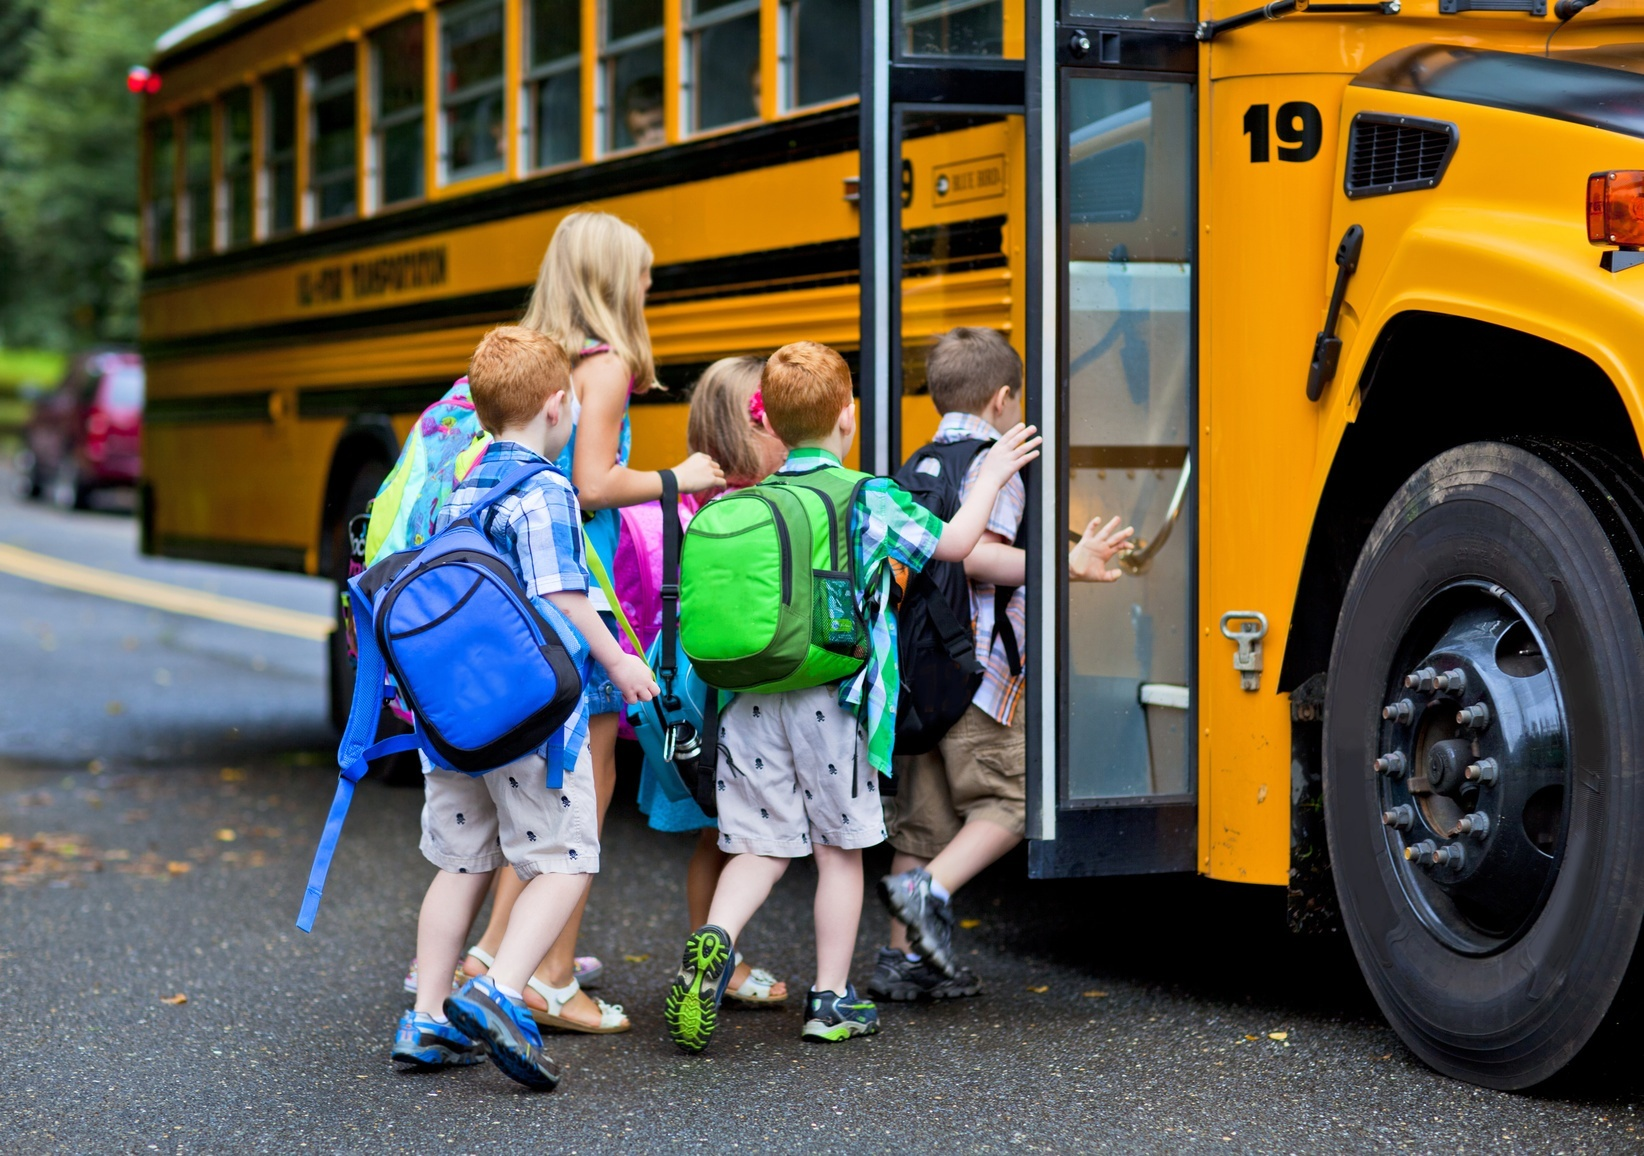 School Buses carry precious cargo; keeping that cargo safe is a #1 priority.